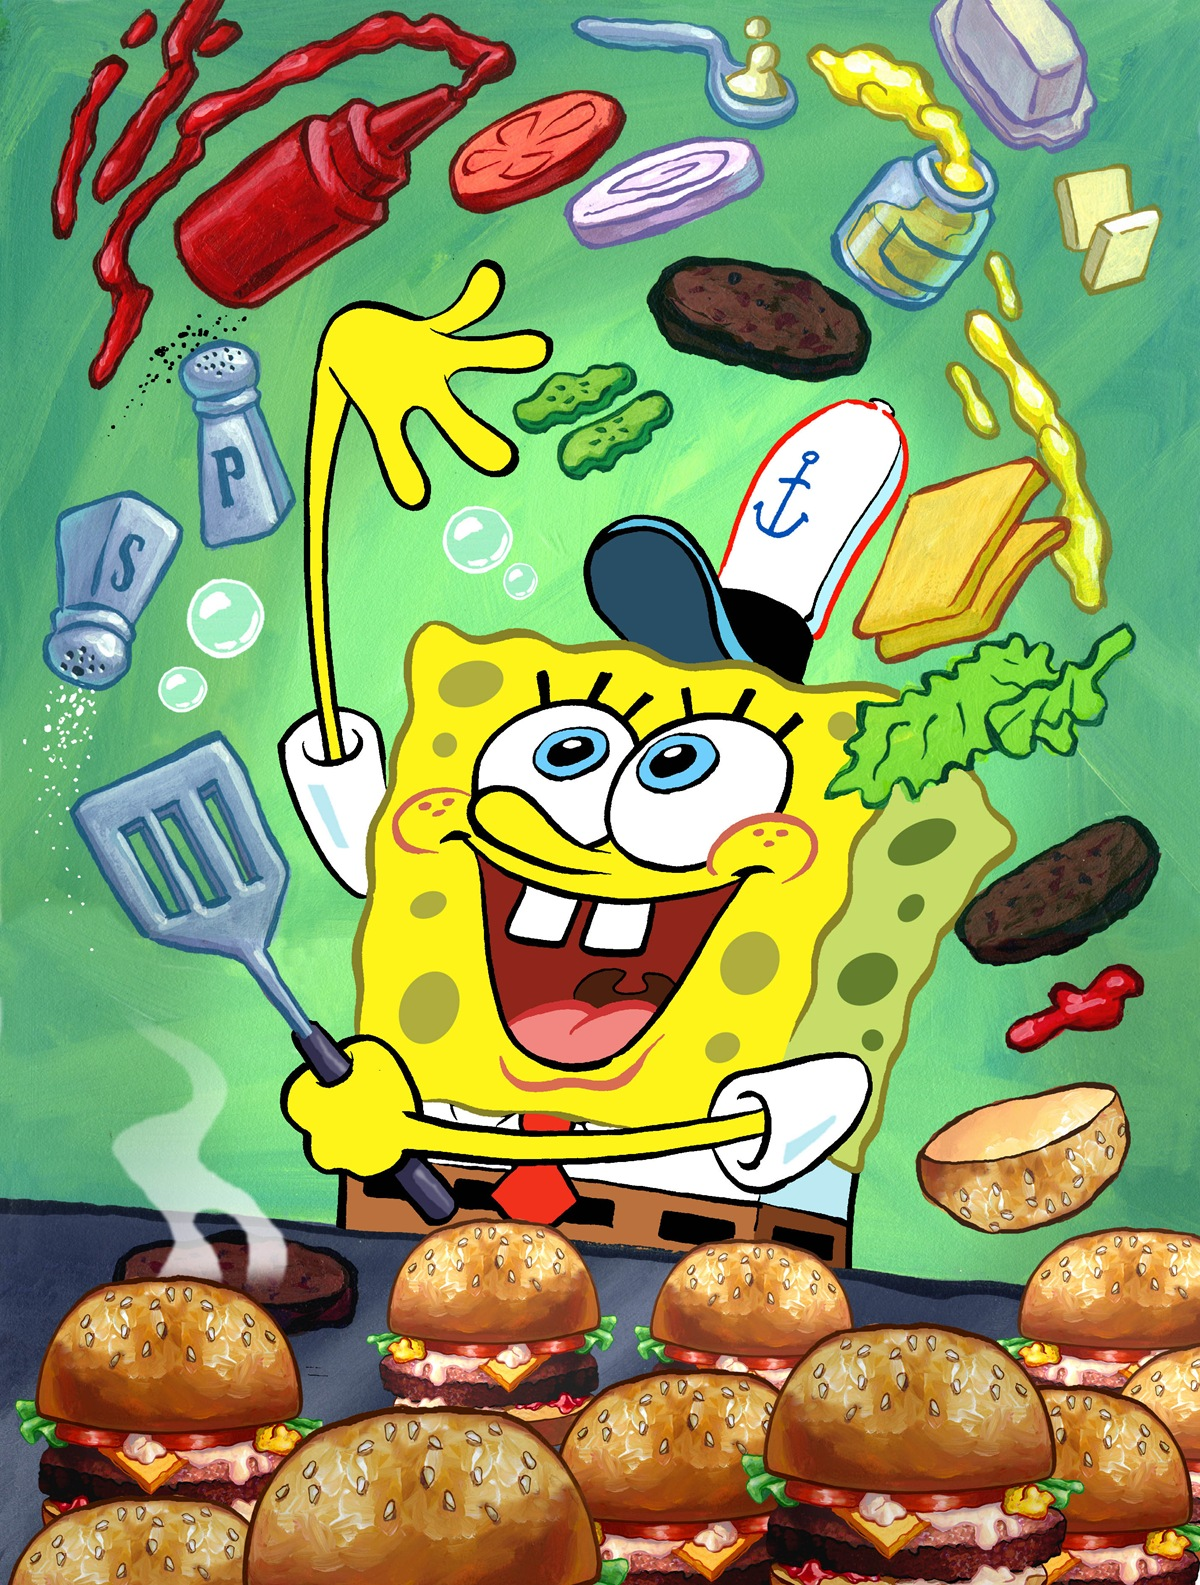 Image - Background Suggestion 2.jpg | Encyclopedia SpongeBobia ...